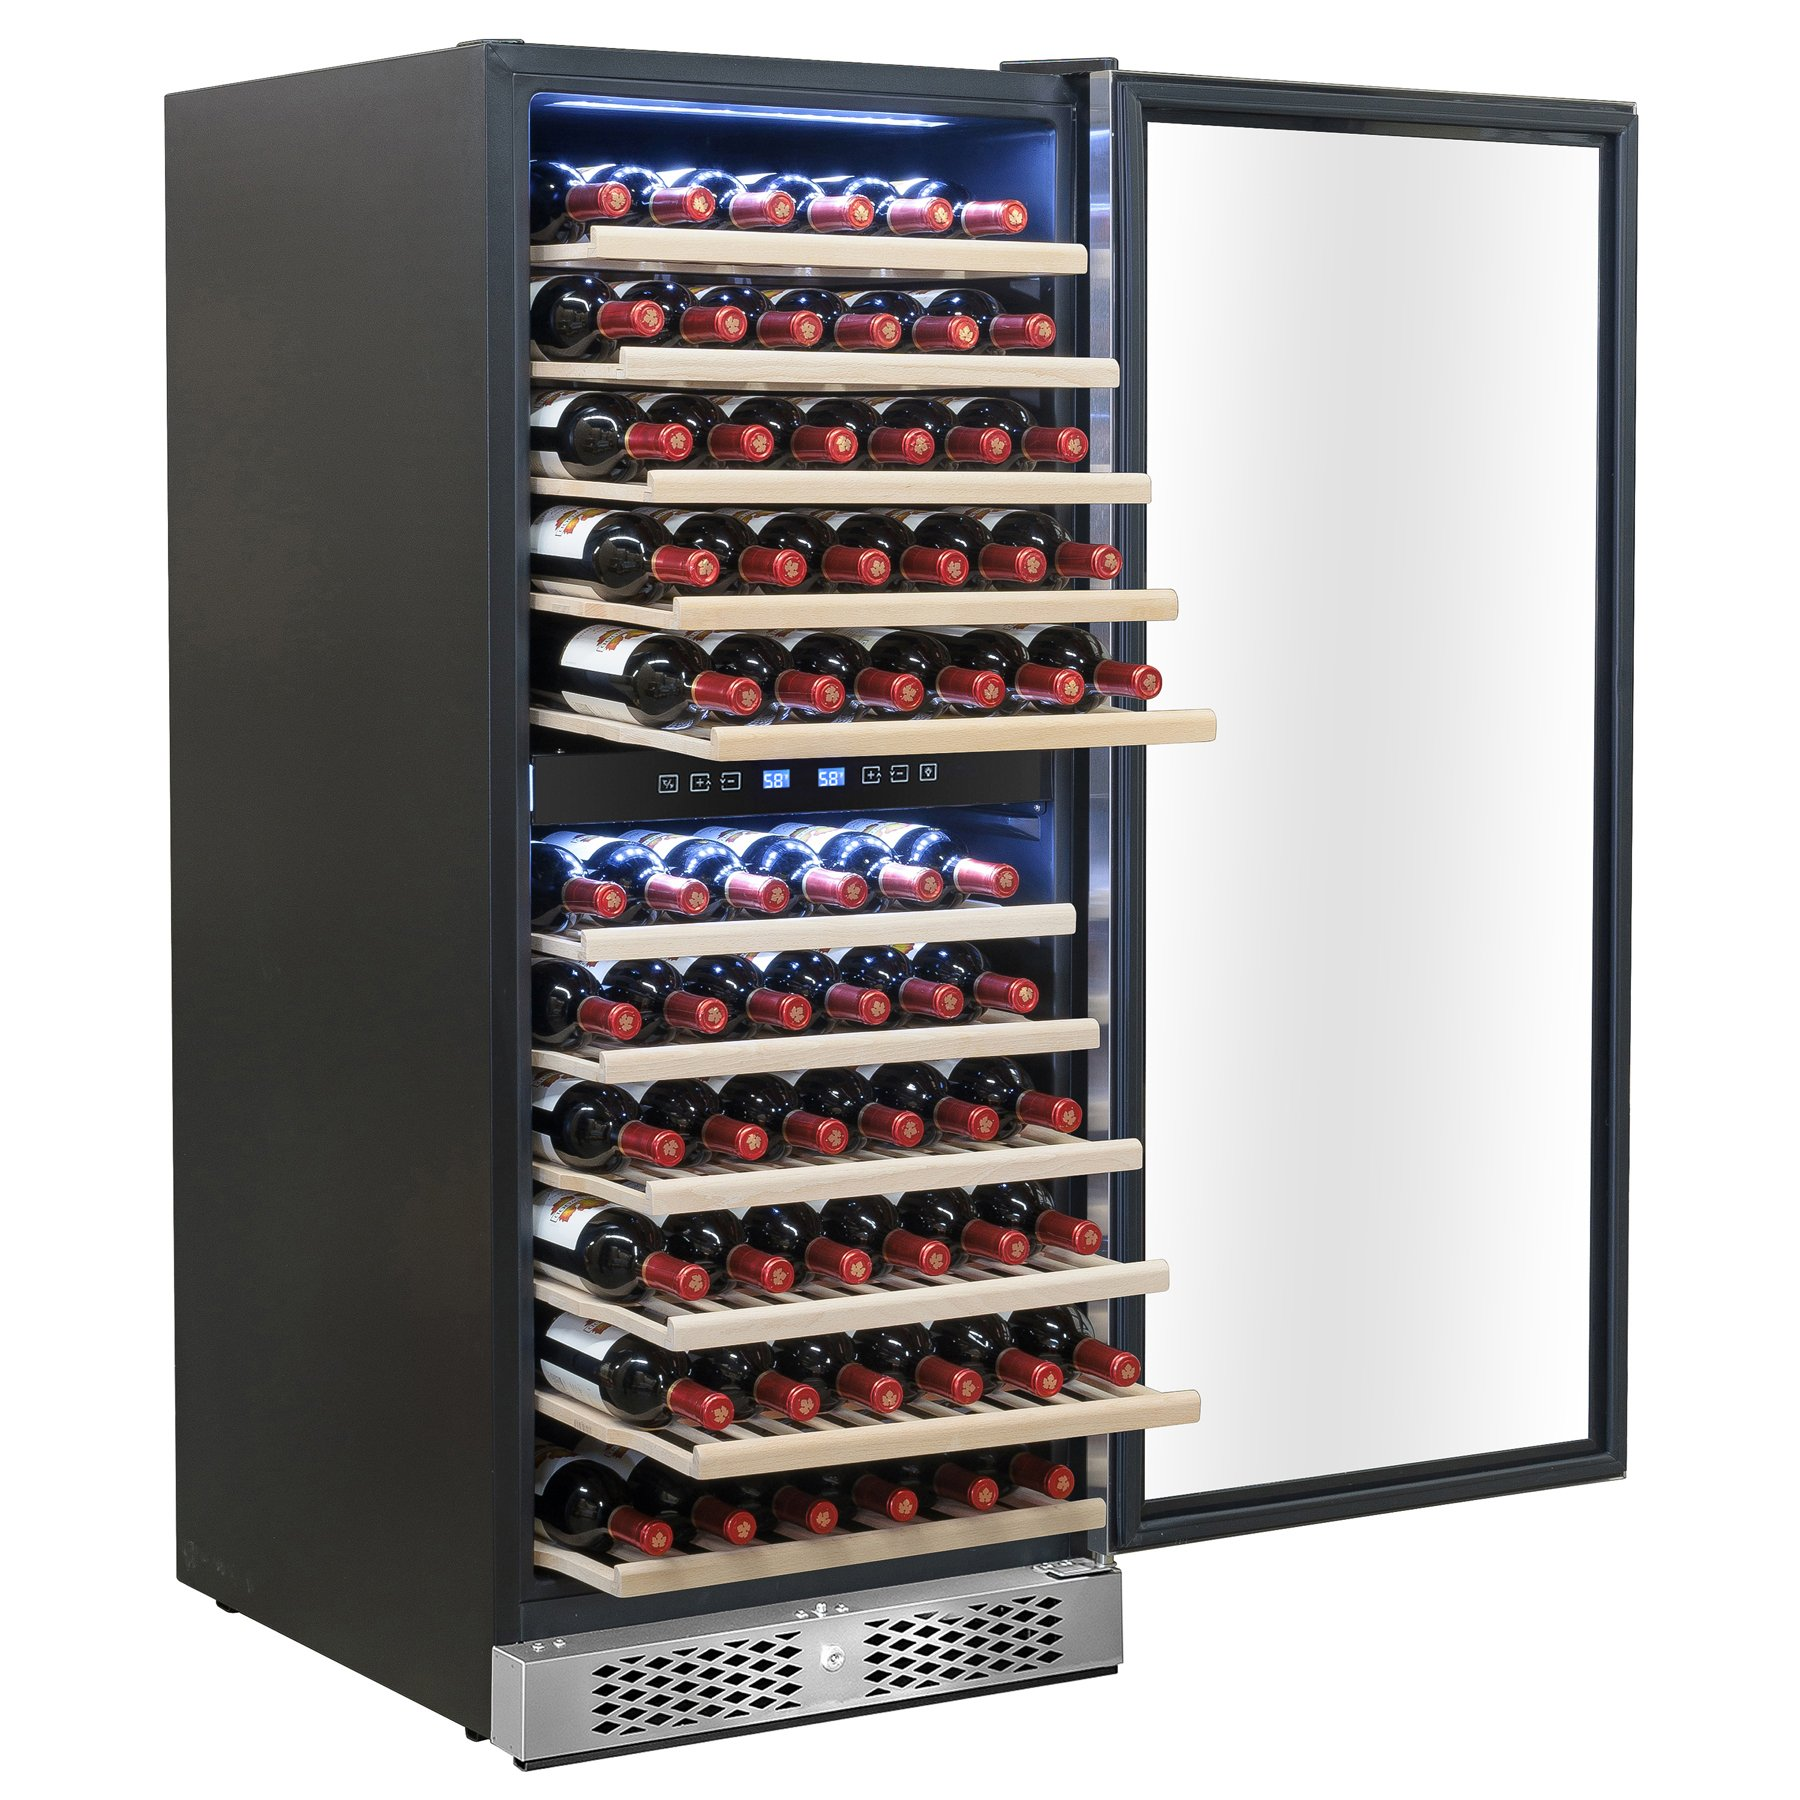 AKDY 116 Bottles Dual Zone Built-in Compressor Freestanding Wine Cooler w/ Touch Control Panel